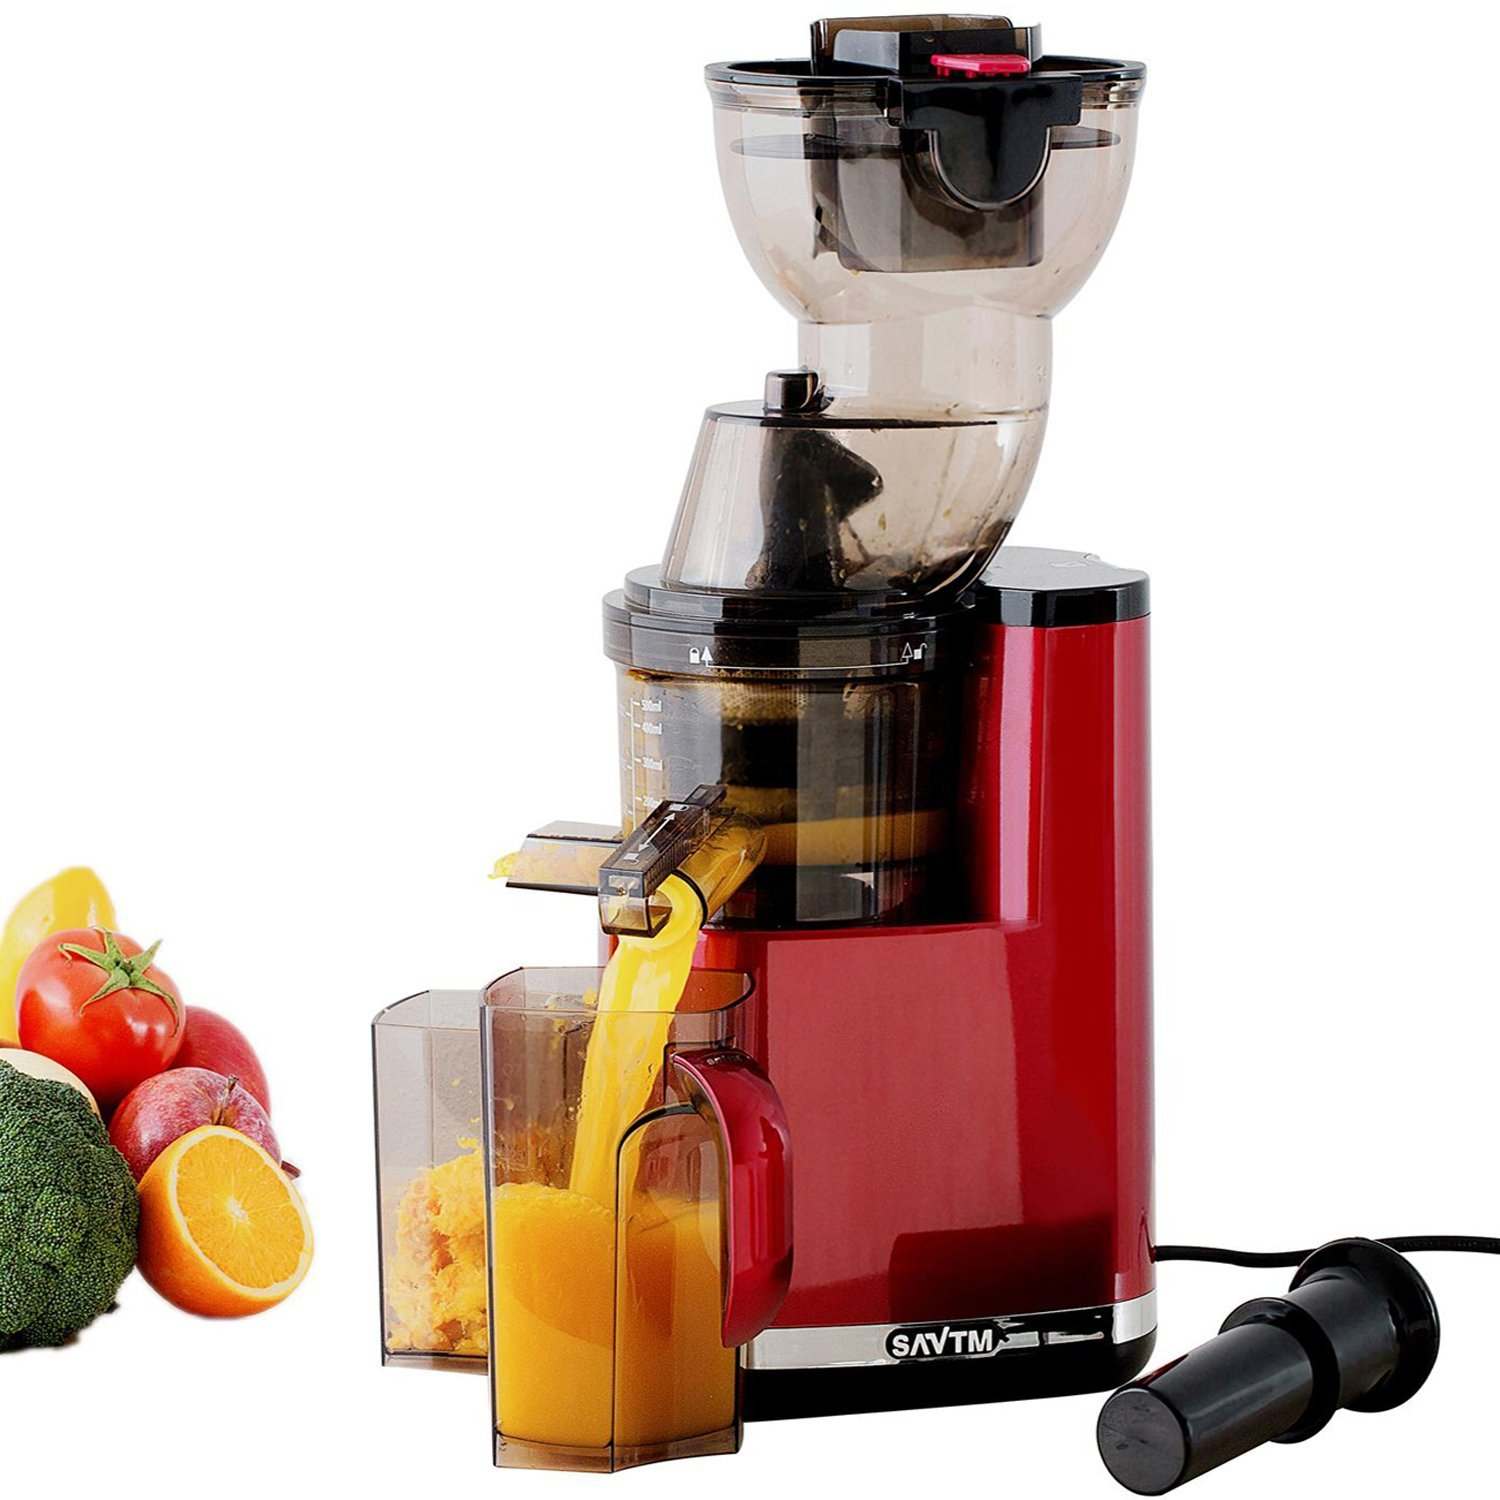 SAVTM JE120-08M00 New Electric Masticating Wide Mouth Whole Chute Anti-Oxidative Fruit and Vegetable Slow Juicer, Red(250W AC Motor, 35 RPMs, 3.5''Inches Big Mouth)